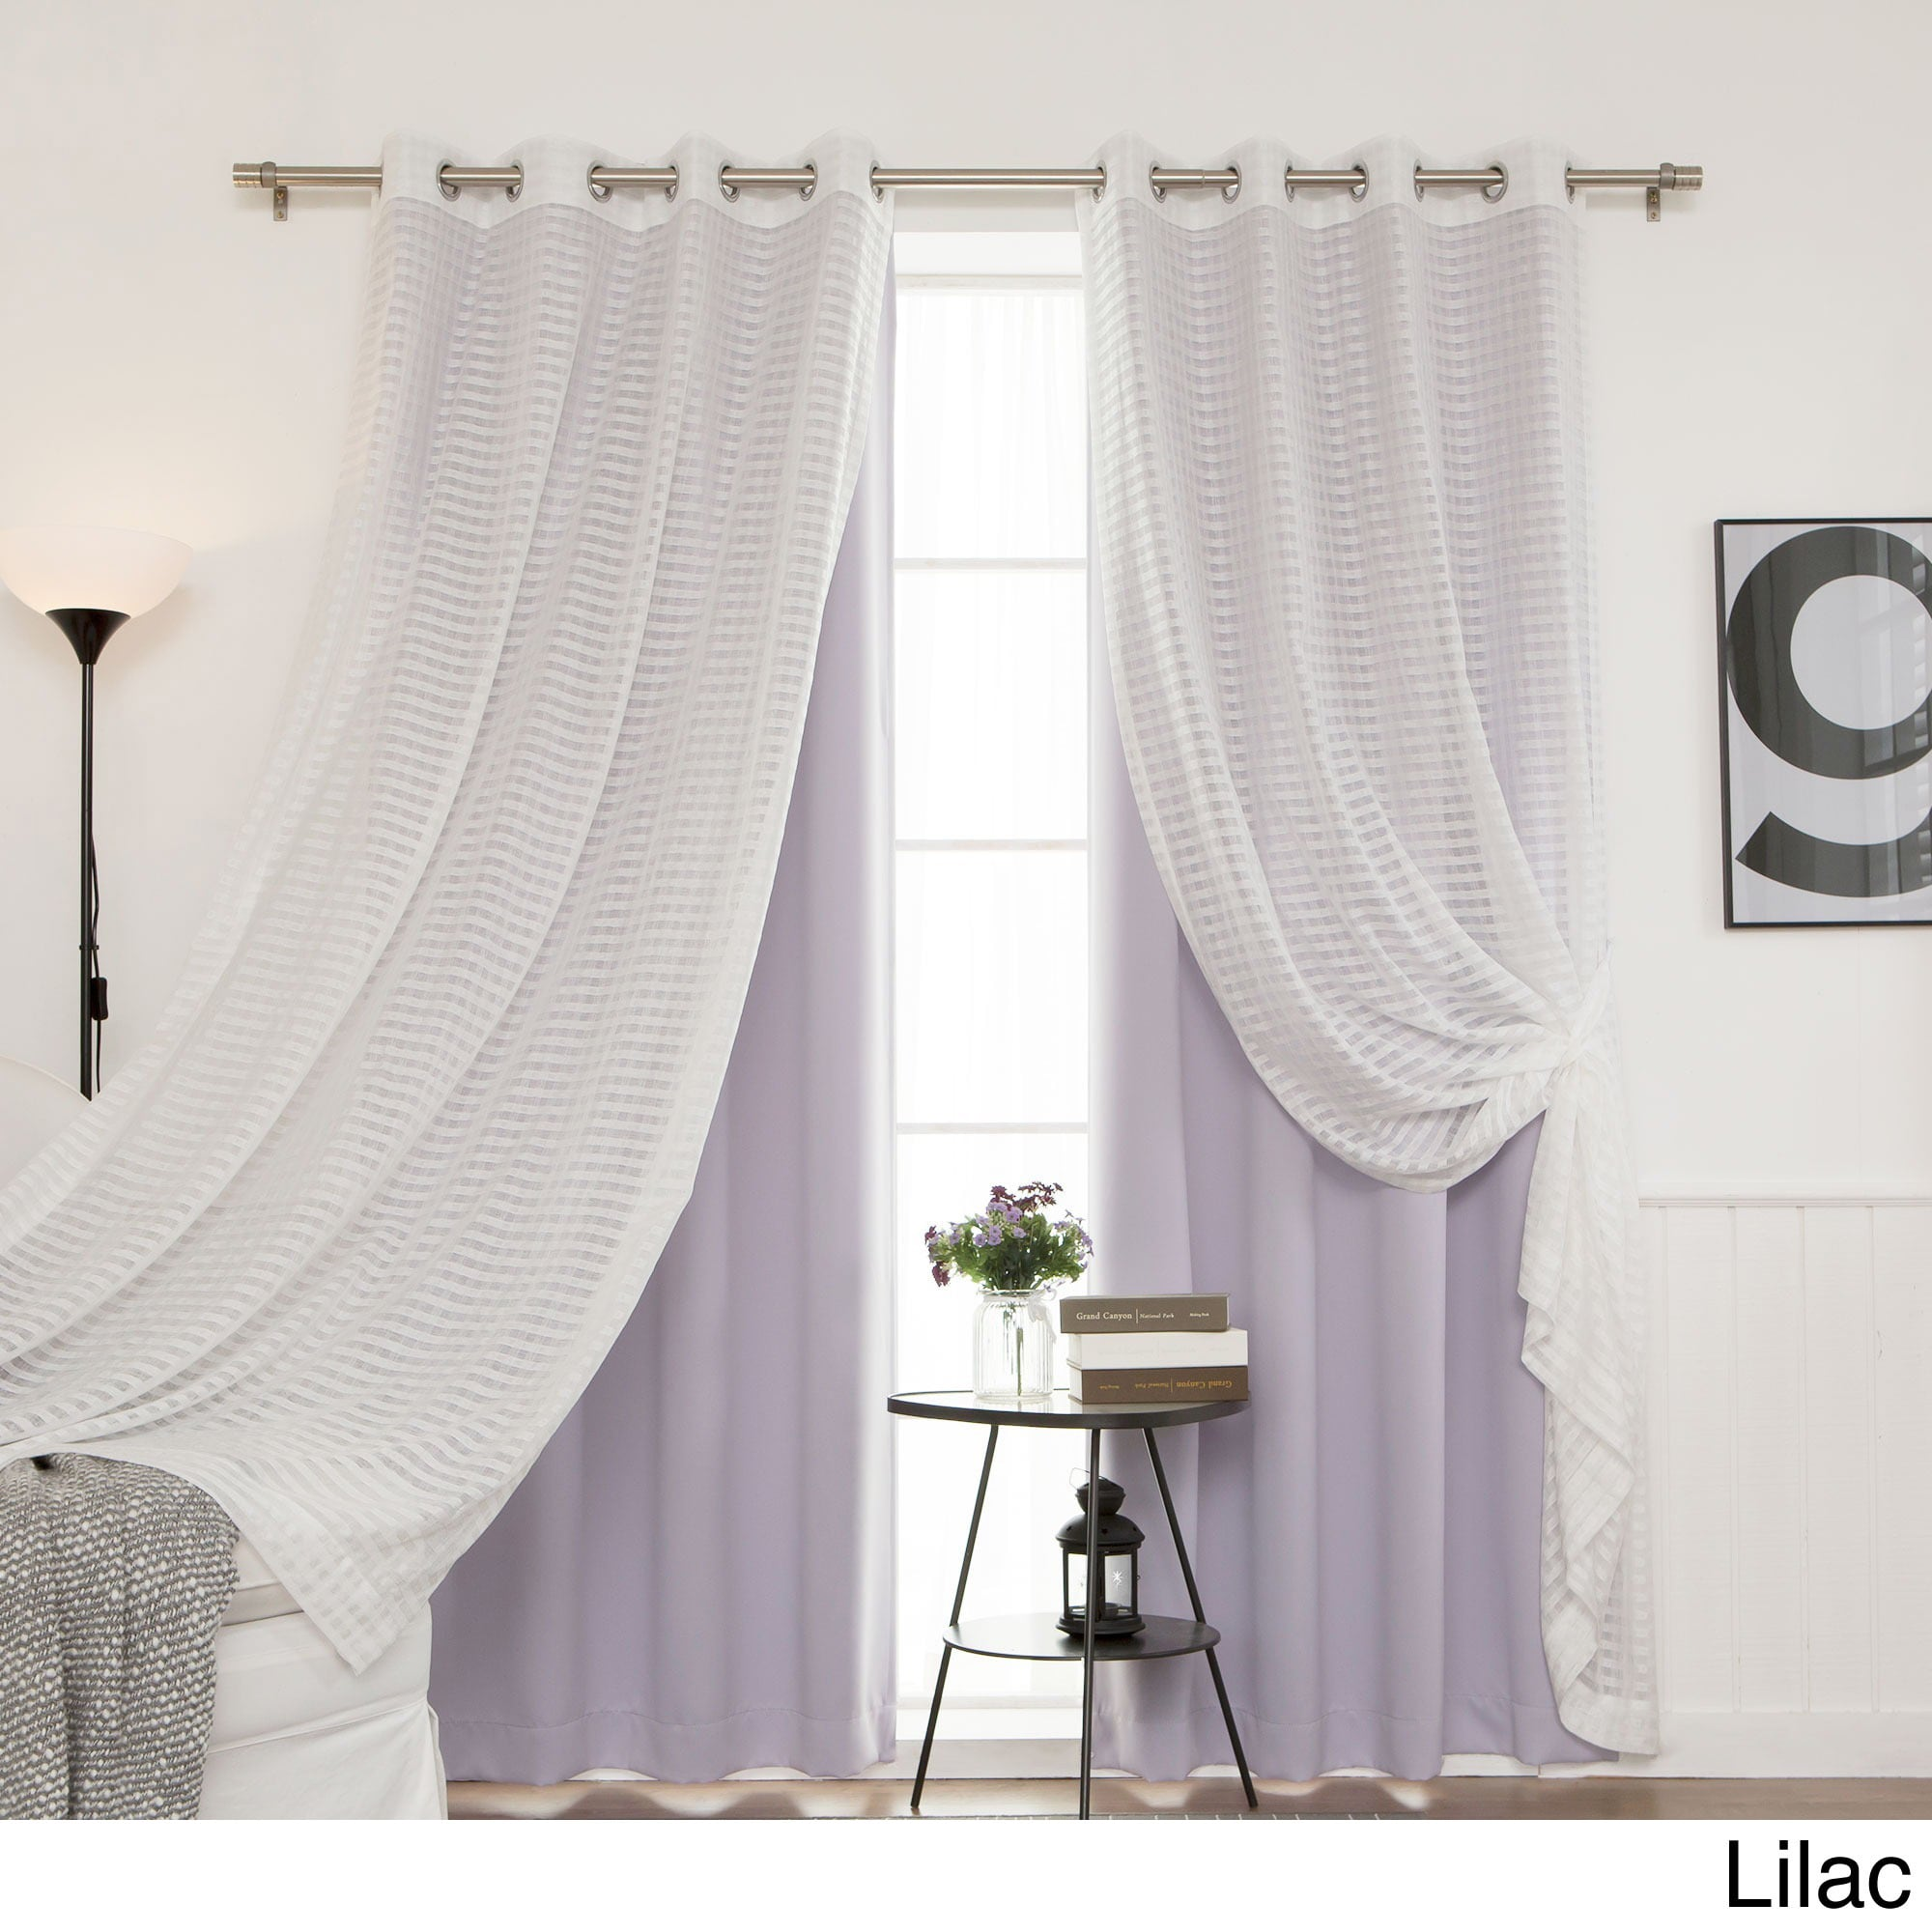 surprising mixed swag shower door and curtainsblue curtain dusty scarlet of photos valance or full curtains blockout bedroom ideas purple pelmet blue drapes size